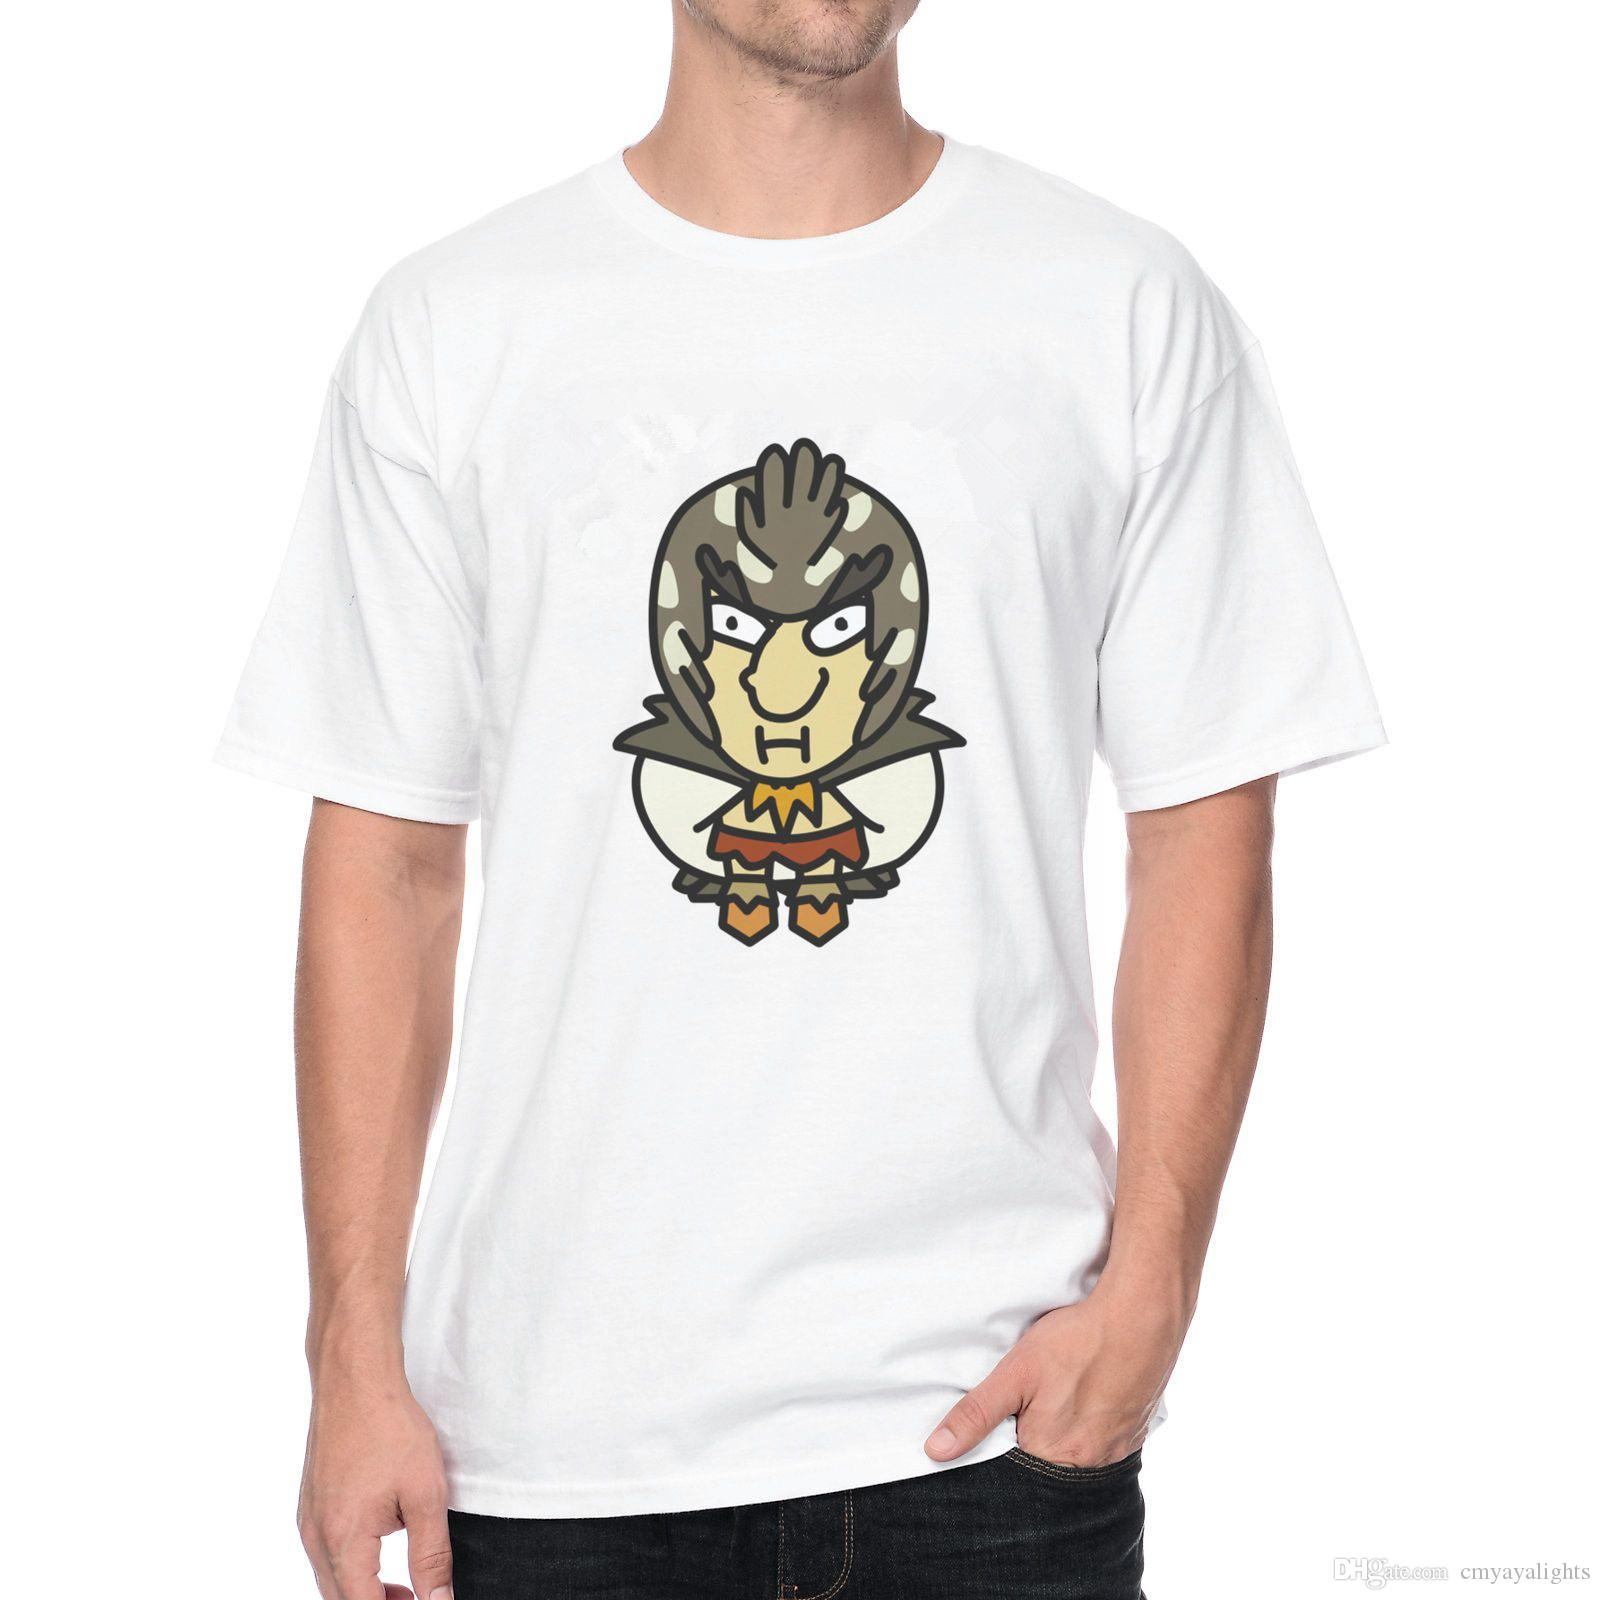 Design t shirt with pocket - Pocket Bird Person T Shirt 1051 Cartoon Vintage Design T Shirts Fashion Male Short Sleeve O Neck T Shirts White Tee Plus Europe Size Buy Cool Shirts